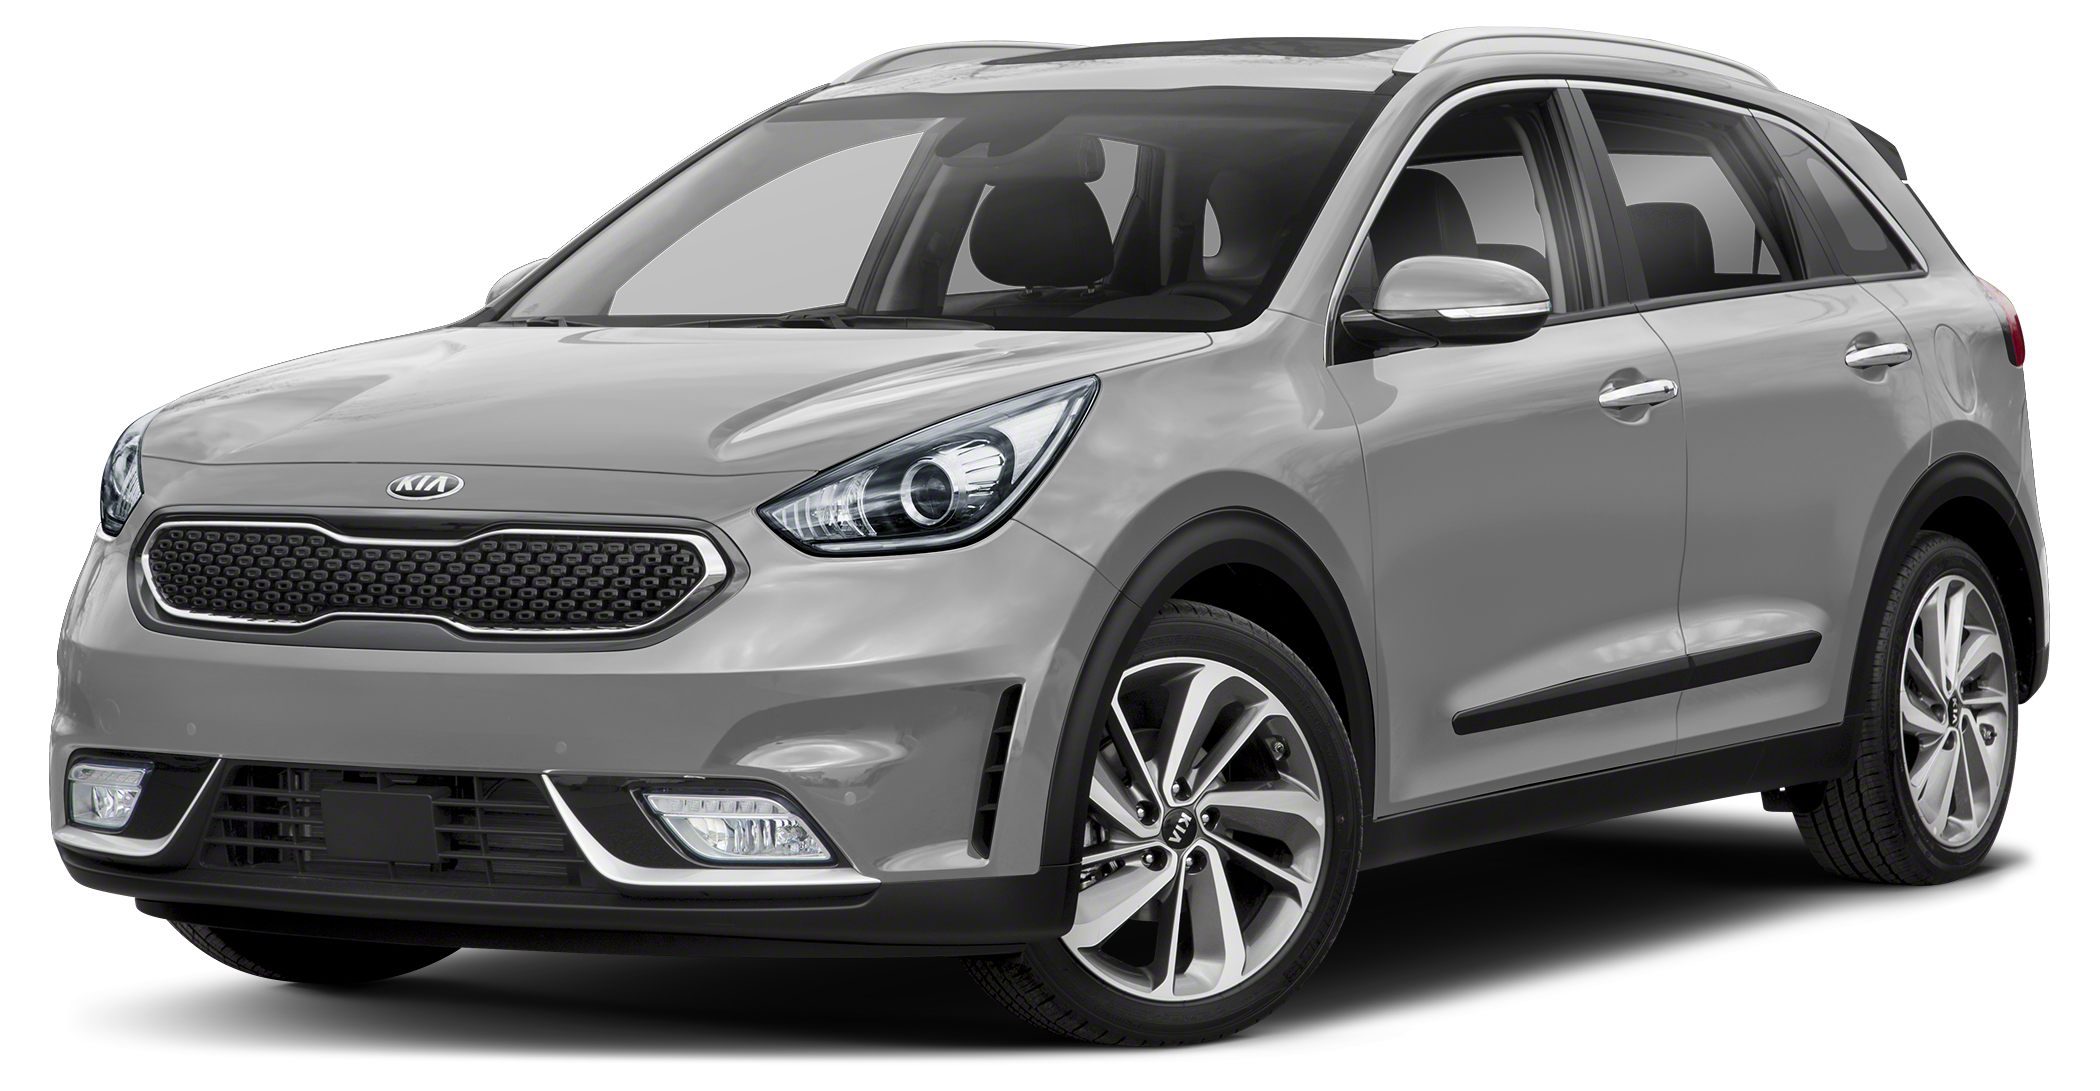 2018 Kia Niro EX Gas miser 46 MPG Hwy You wont find a better SUV than this outstanding Kia C